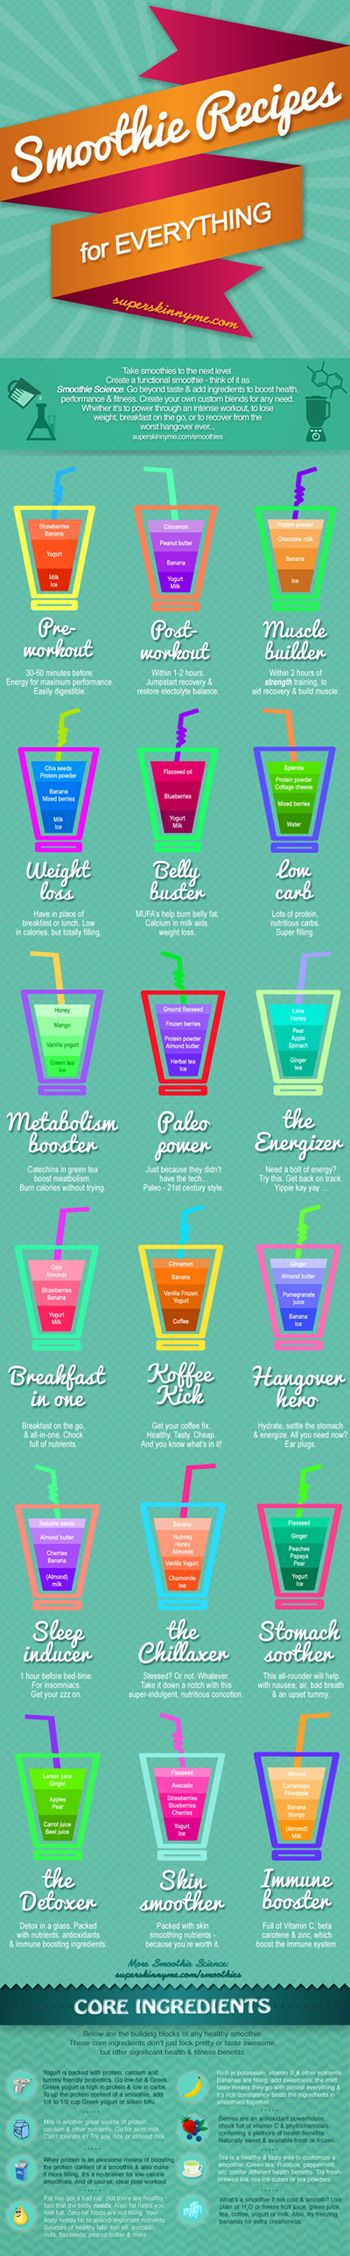 Smoothies for every need!